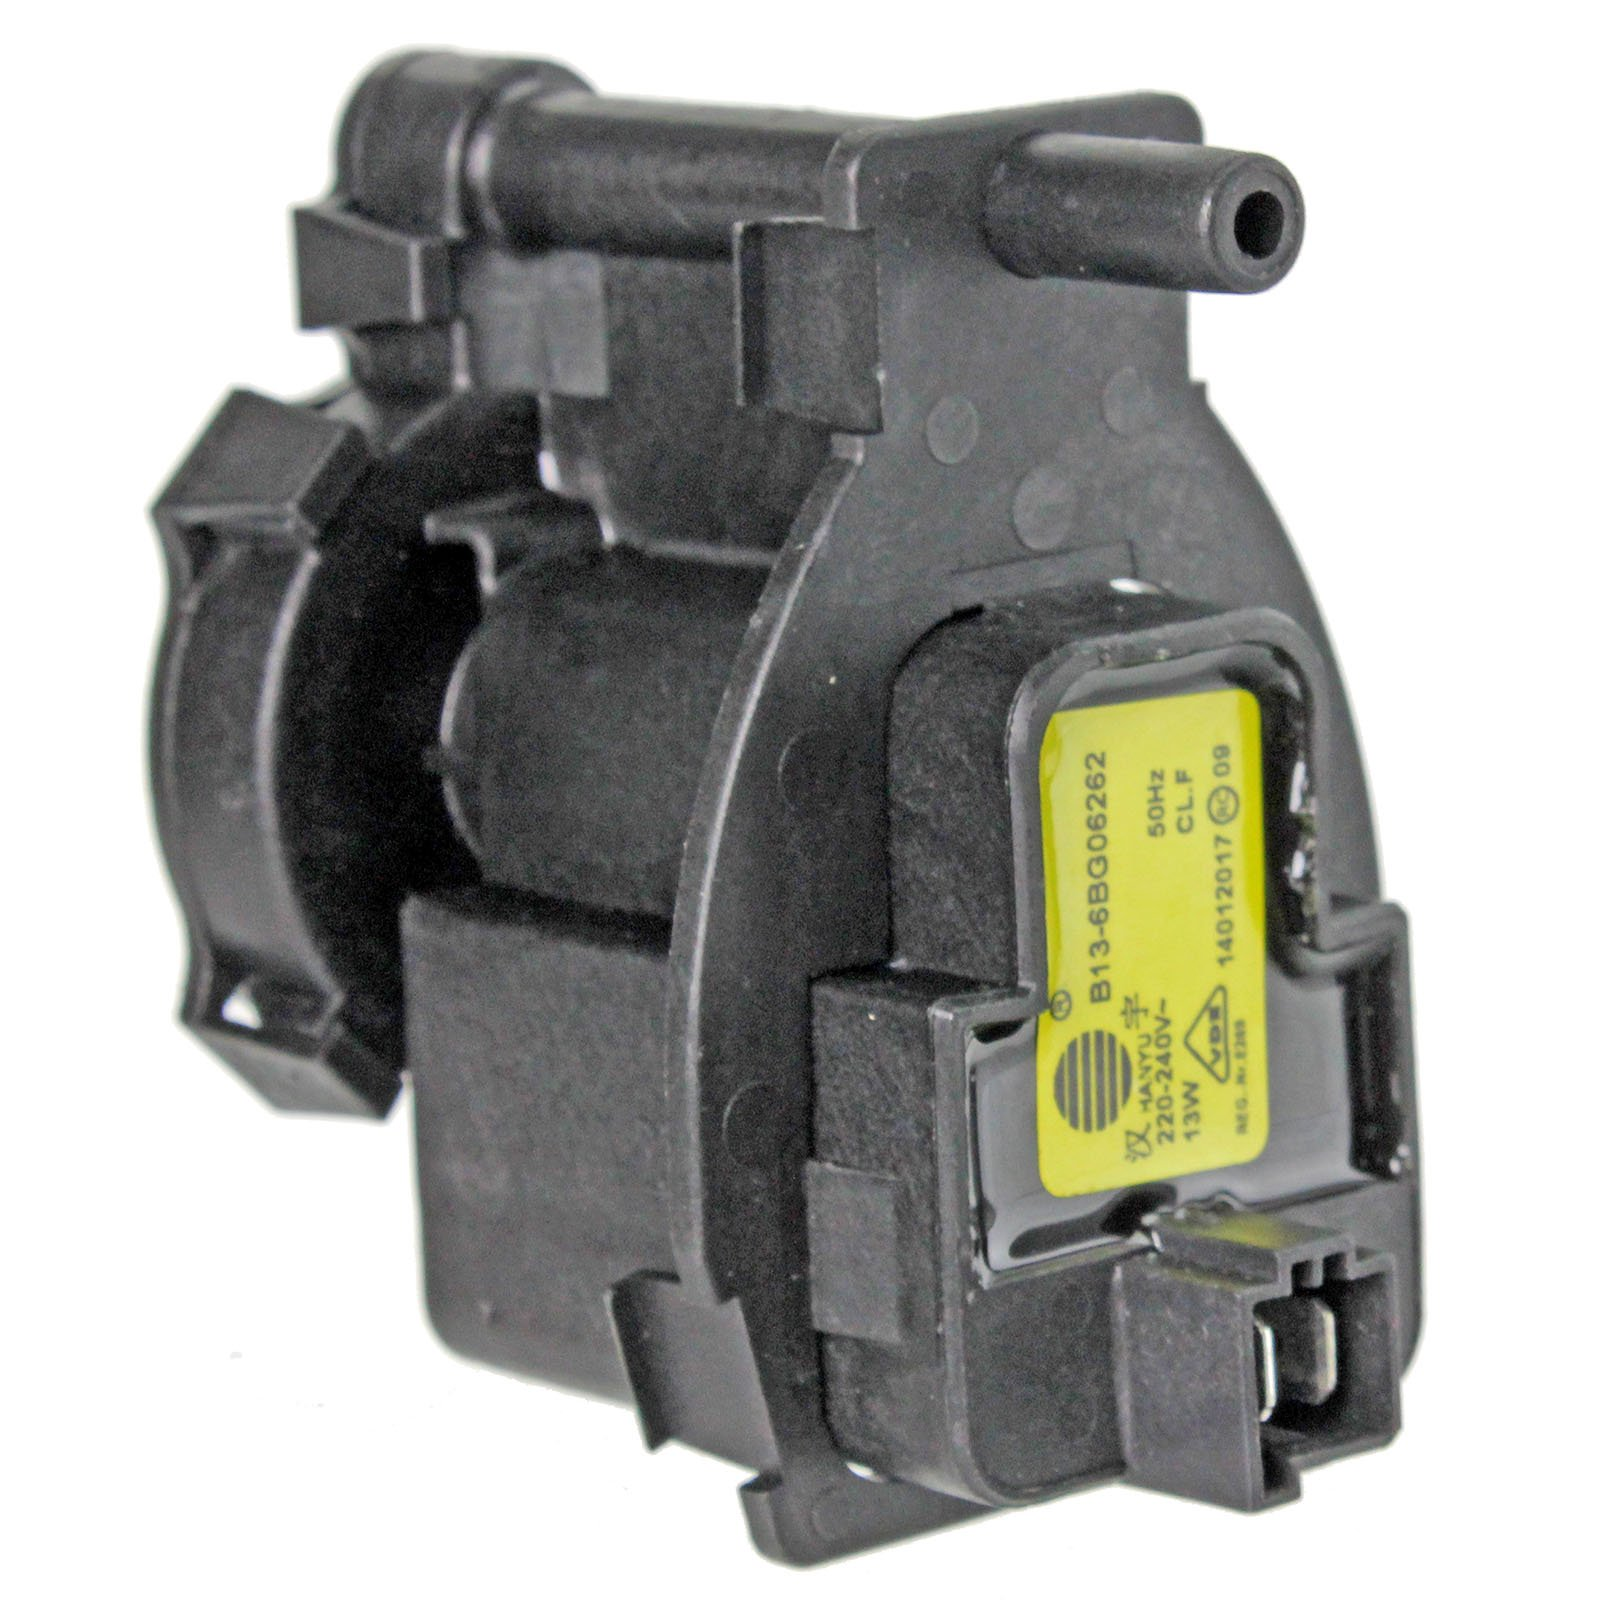 Water Pump Condenser Unit for Indesit Tumble Dryers